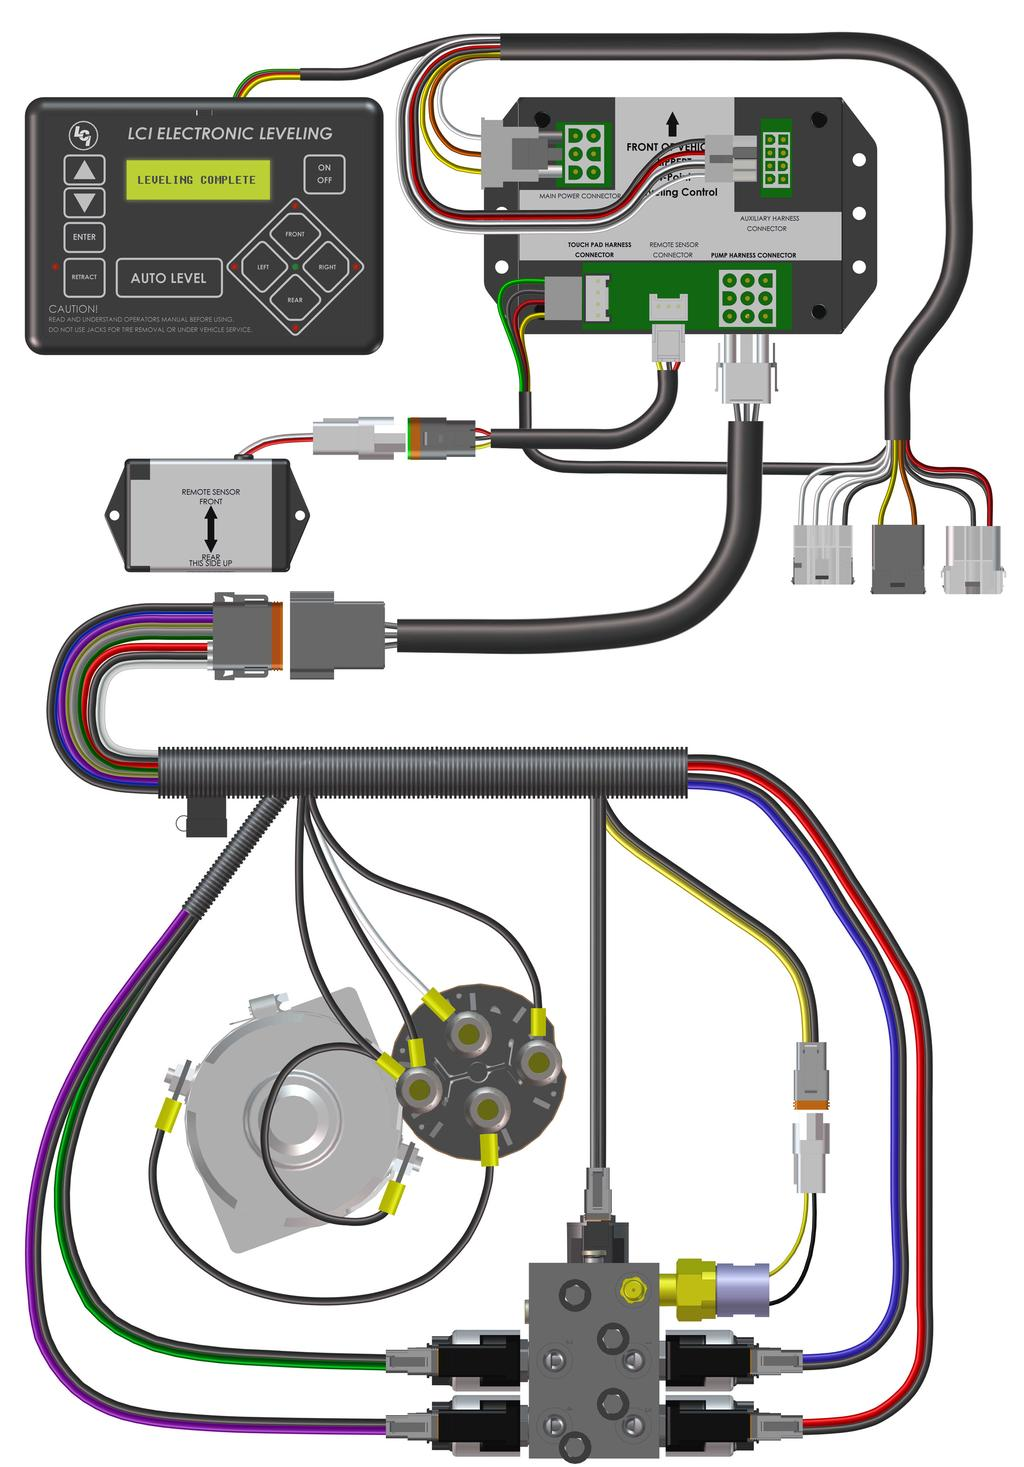 Lci Step Control Module Wiring Diagram from docplayer.net